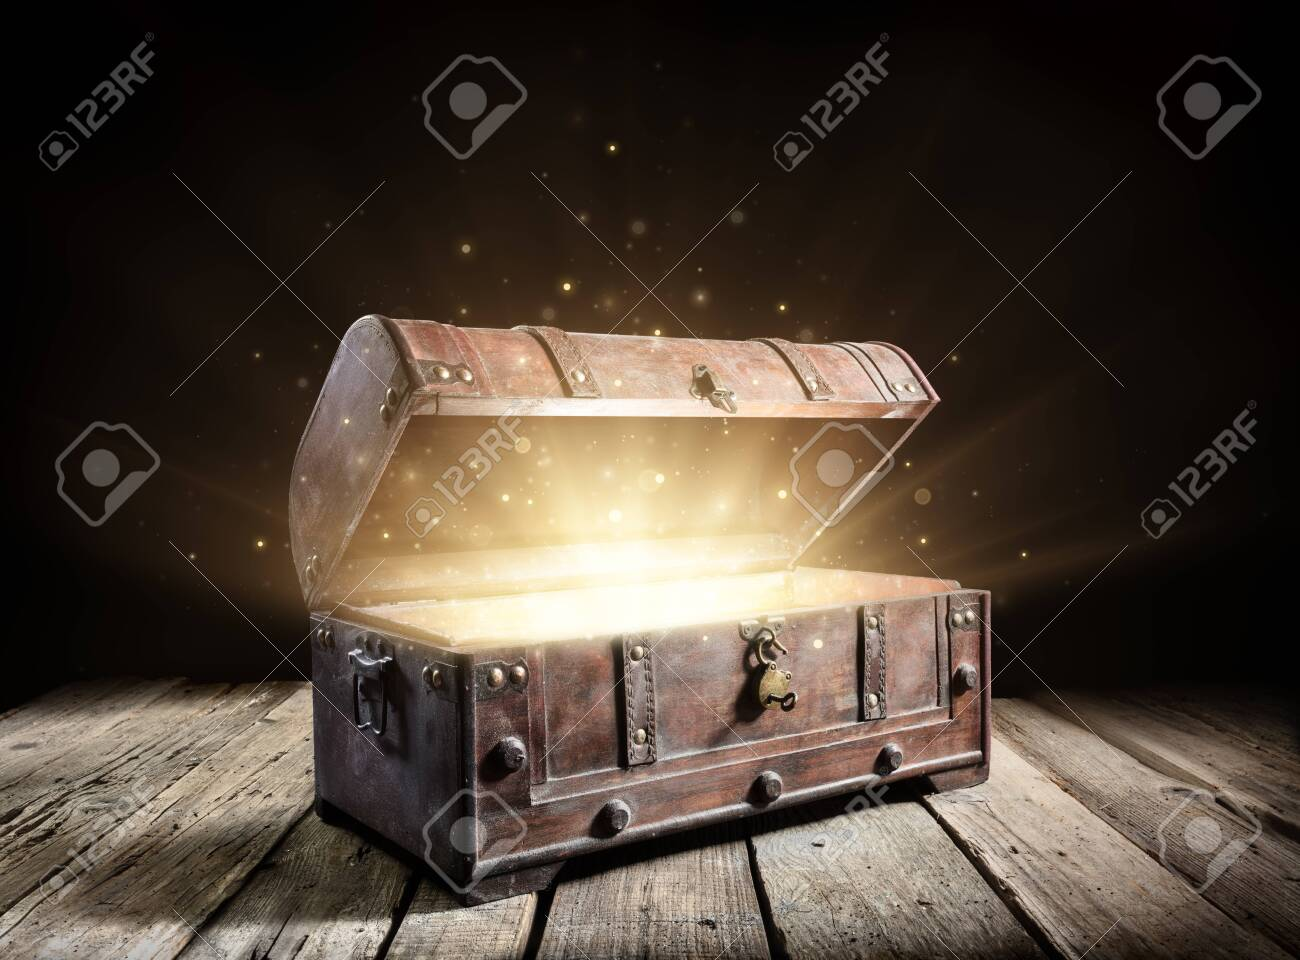 Treasure Chest - Open Ancient Trunk With Glowing Magic Lights In The Dark - 128858779